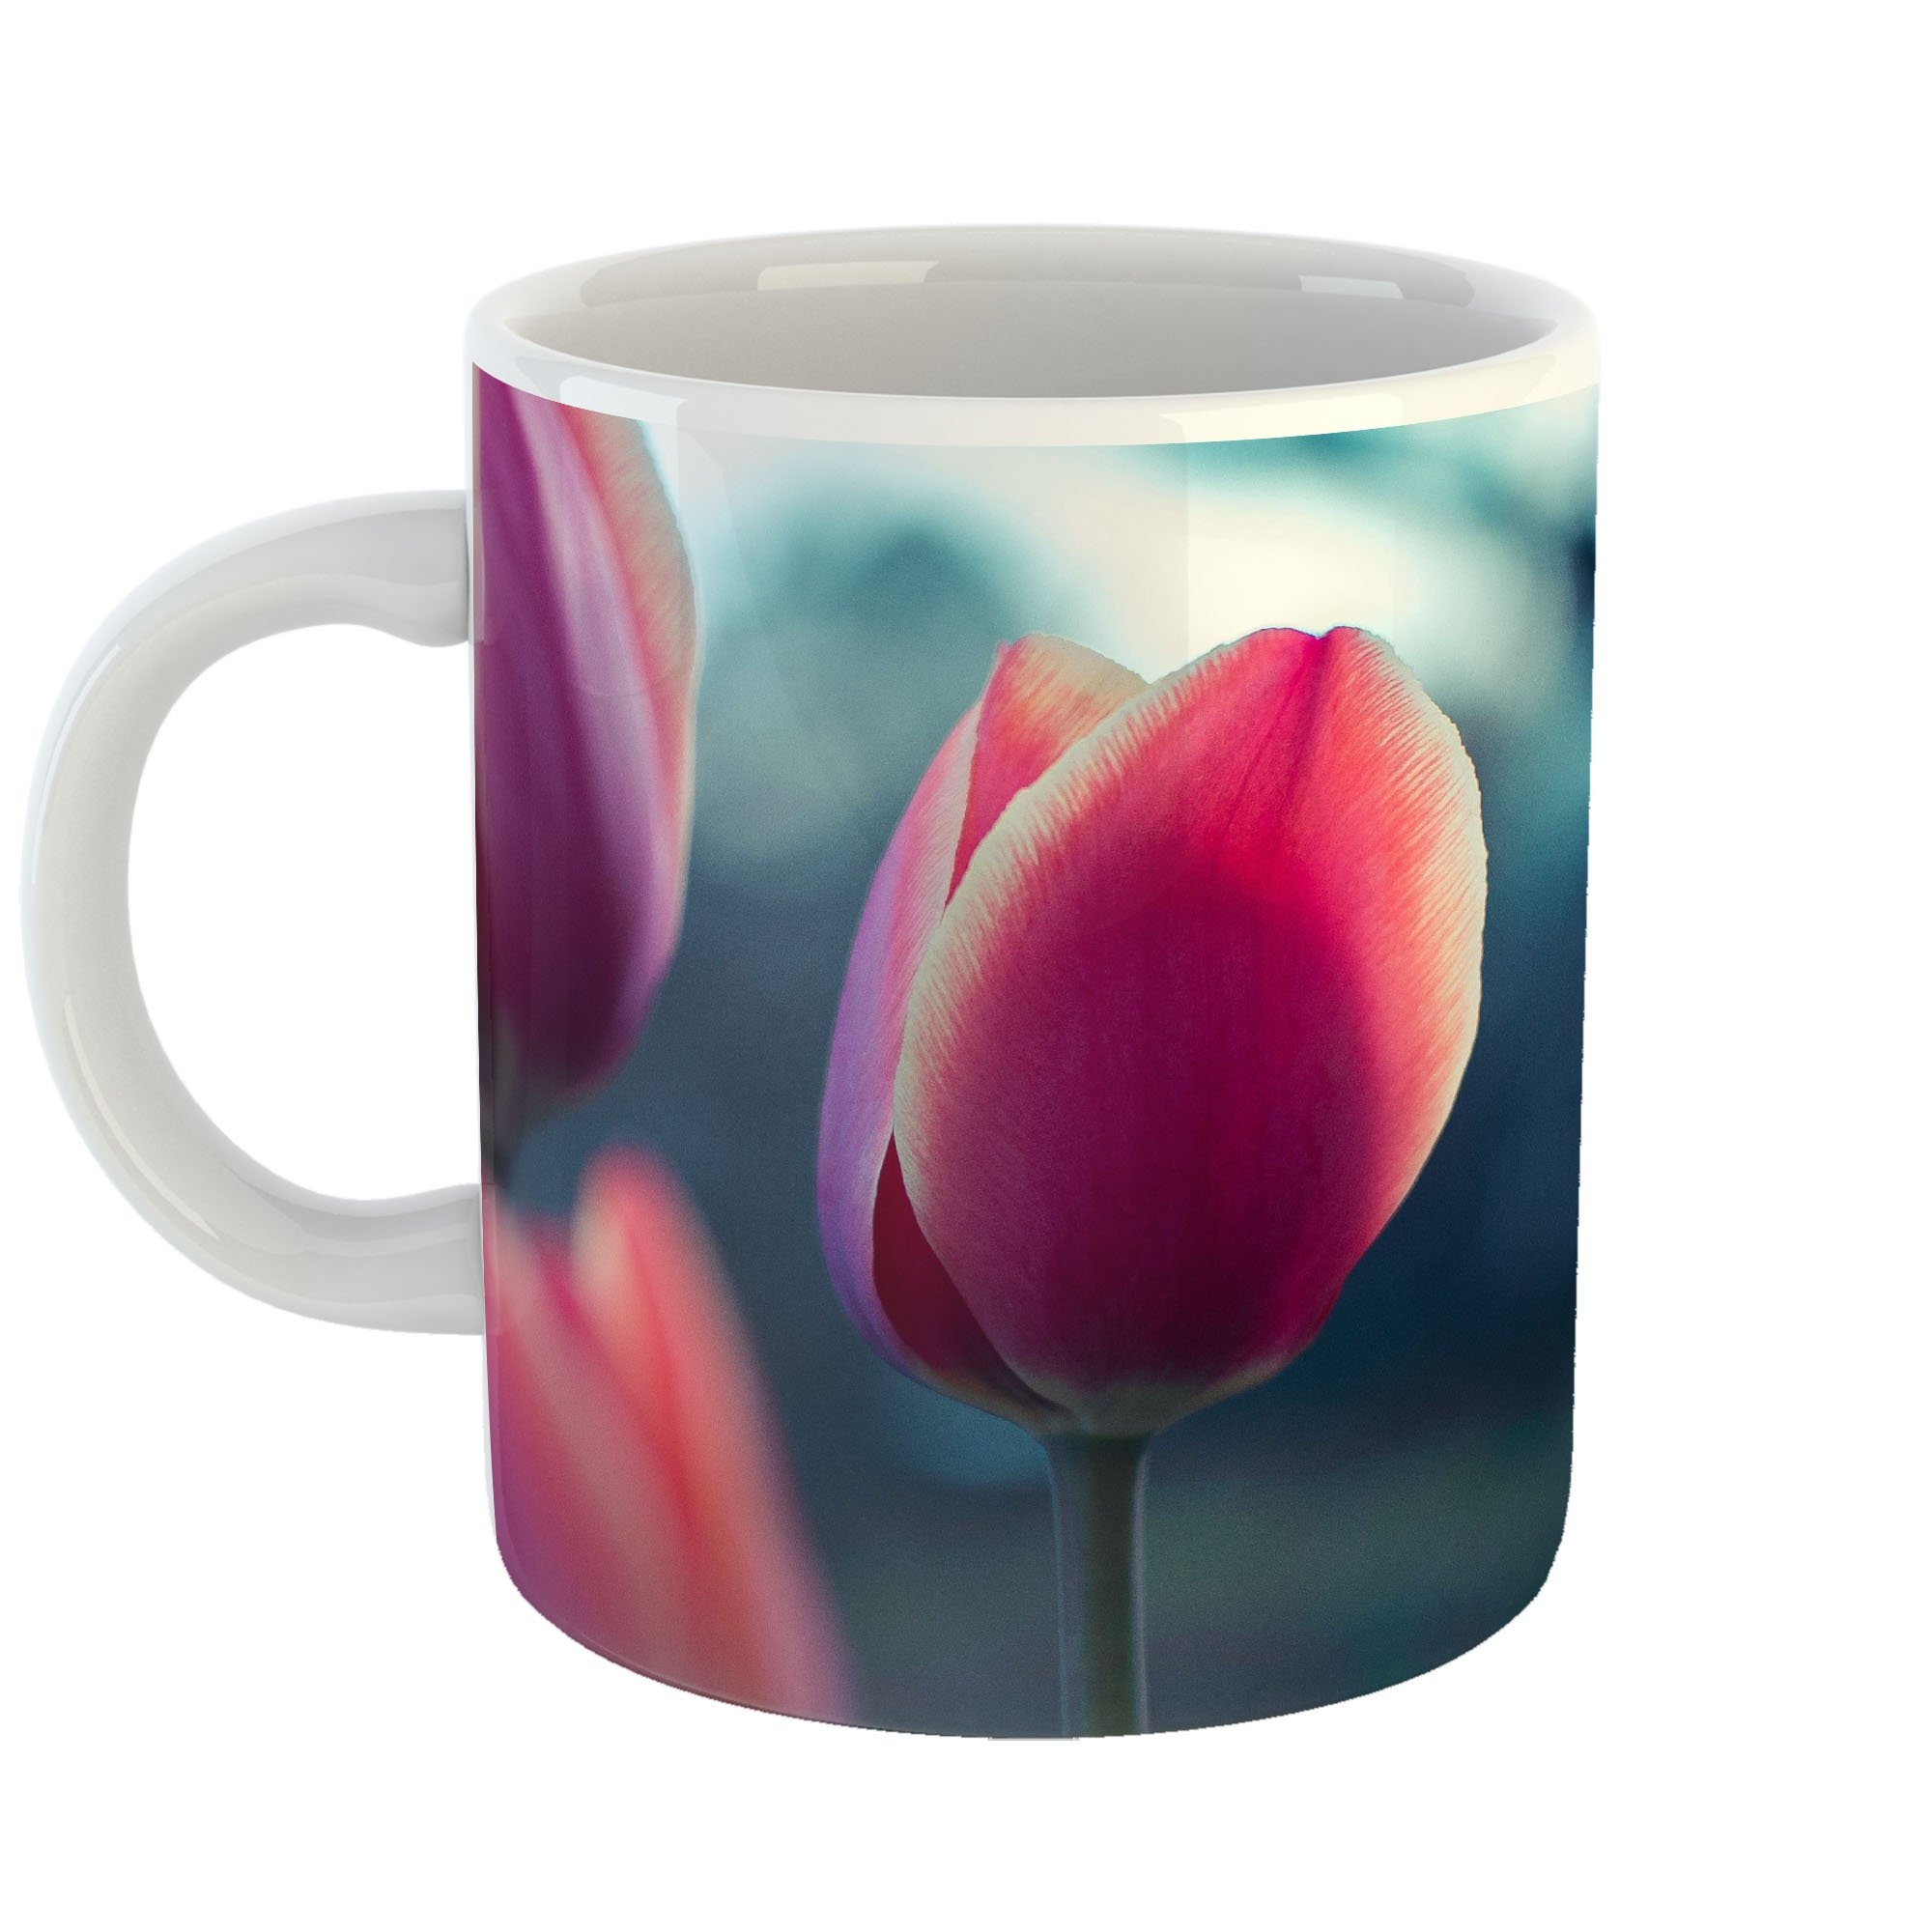 Westlake Art - Tulip Spa - 11oz Coffee Cup Mug - Modern Picture Photography Artwork Home Office Birthday Gift - 11 Ounce (FF99-F197E)